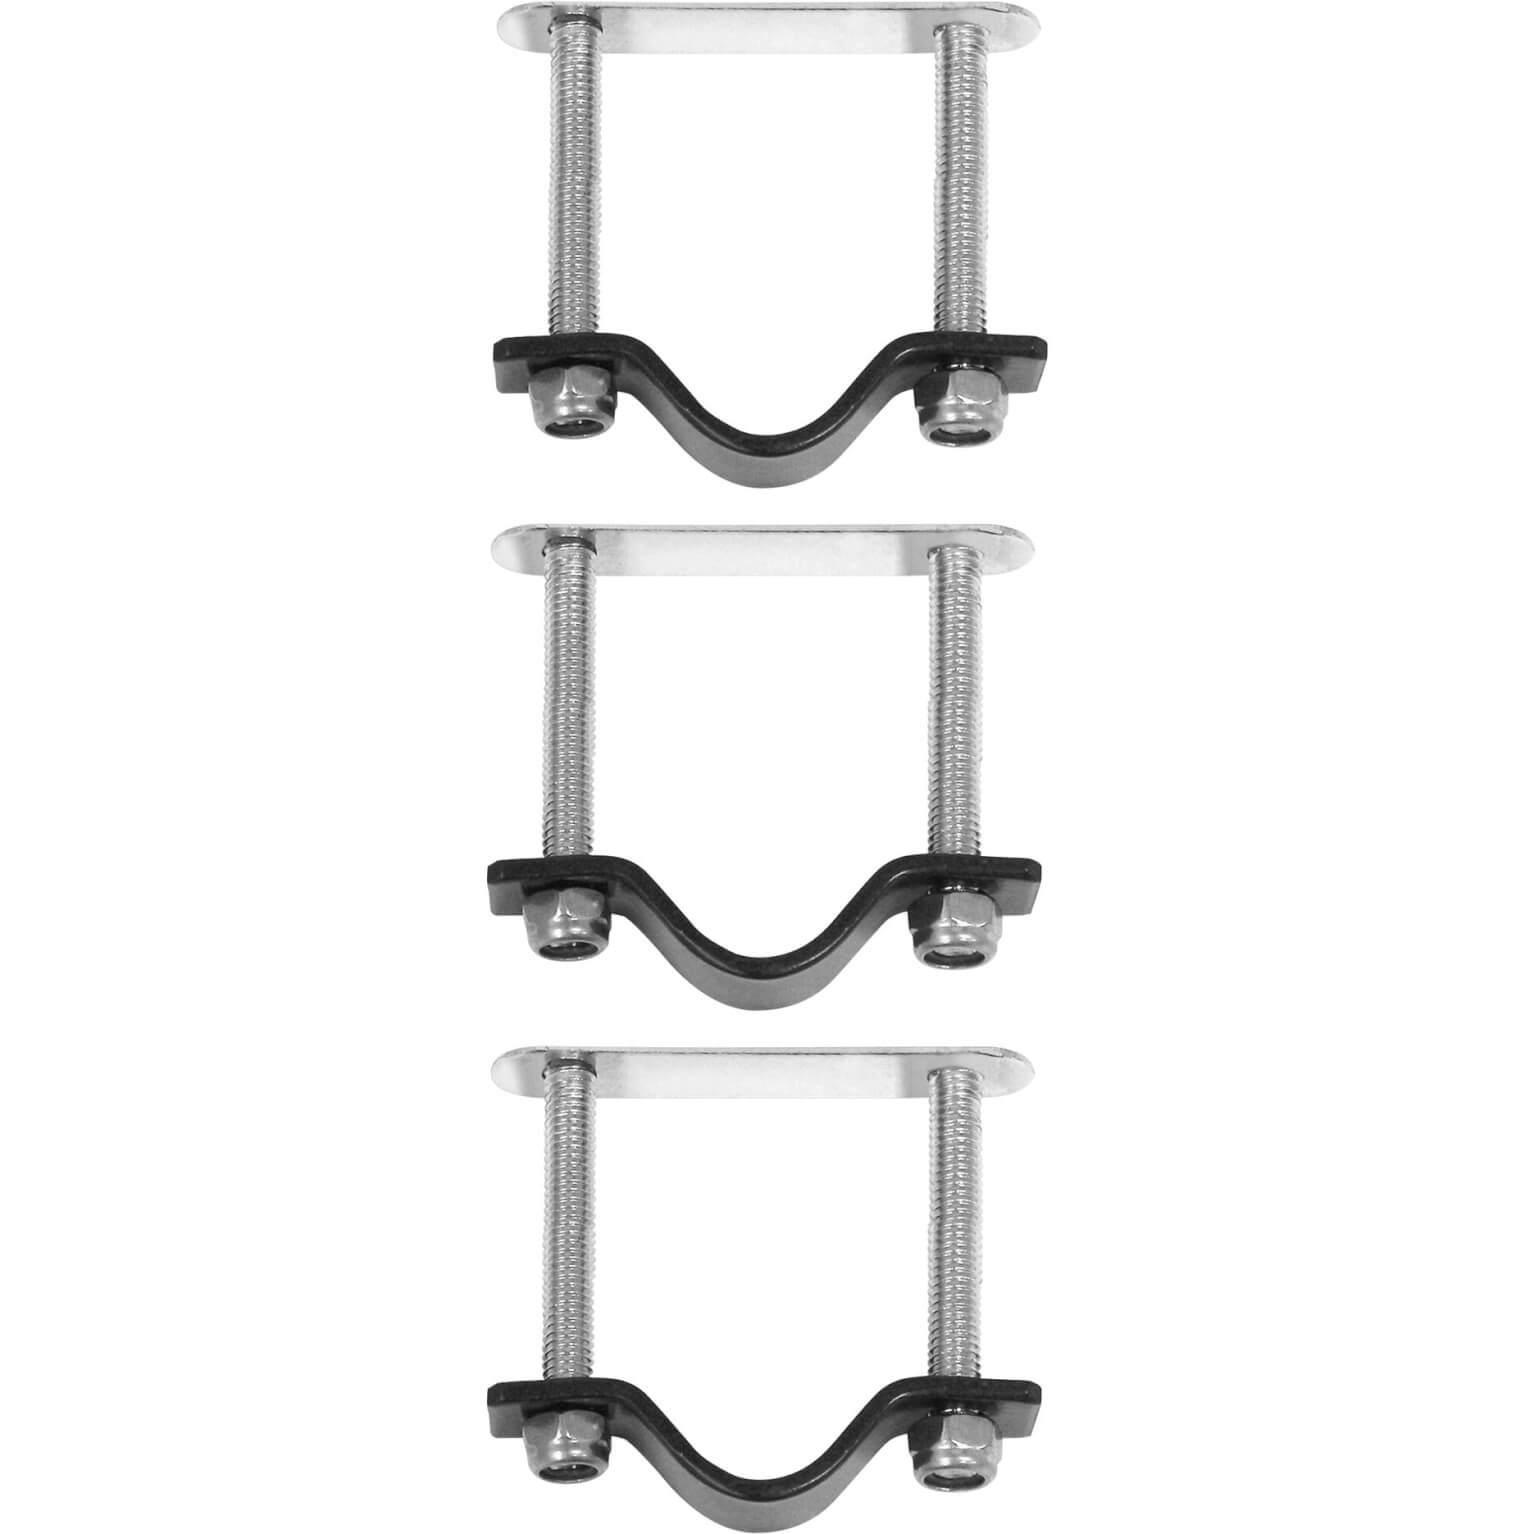 Basil Mounting Set Long Transport Crate